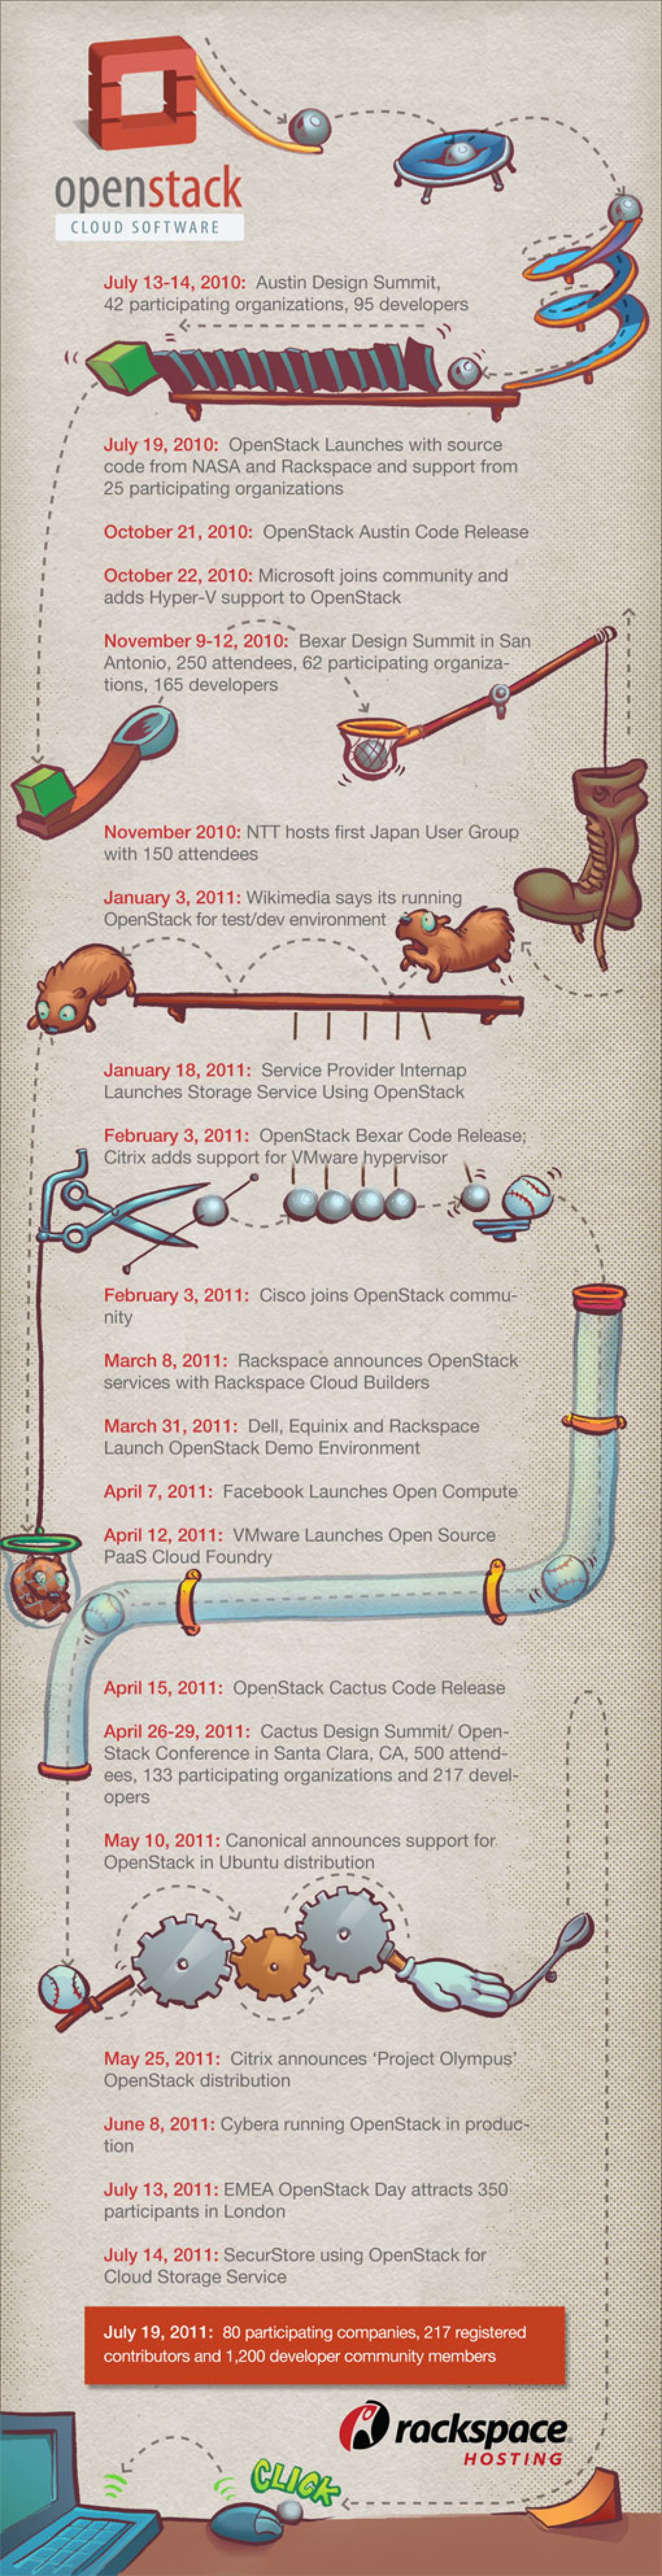 OpenStack History Infographic